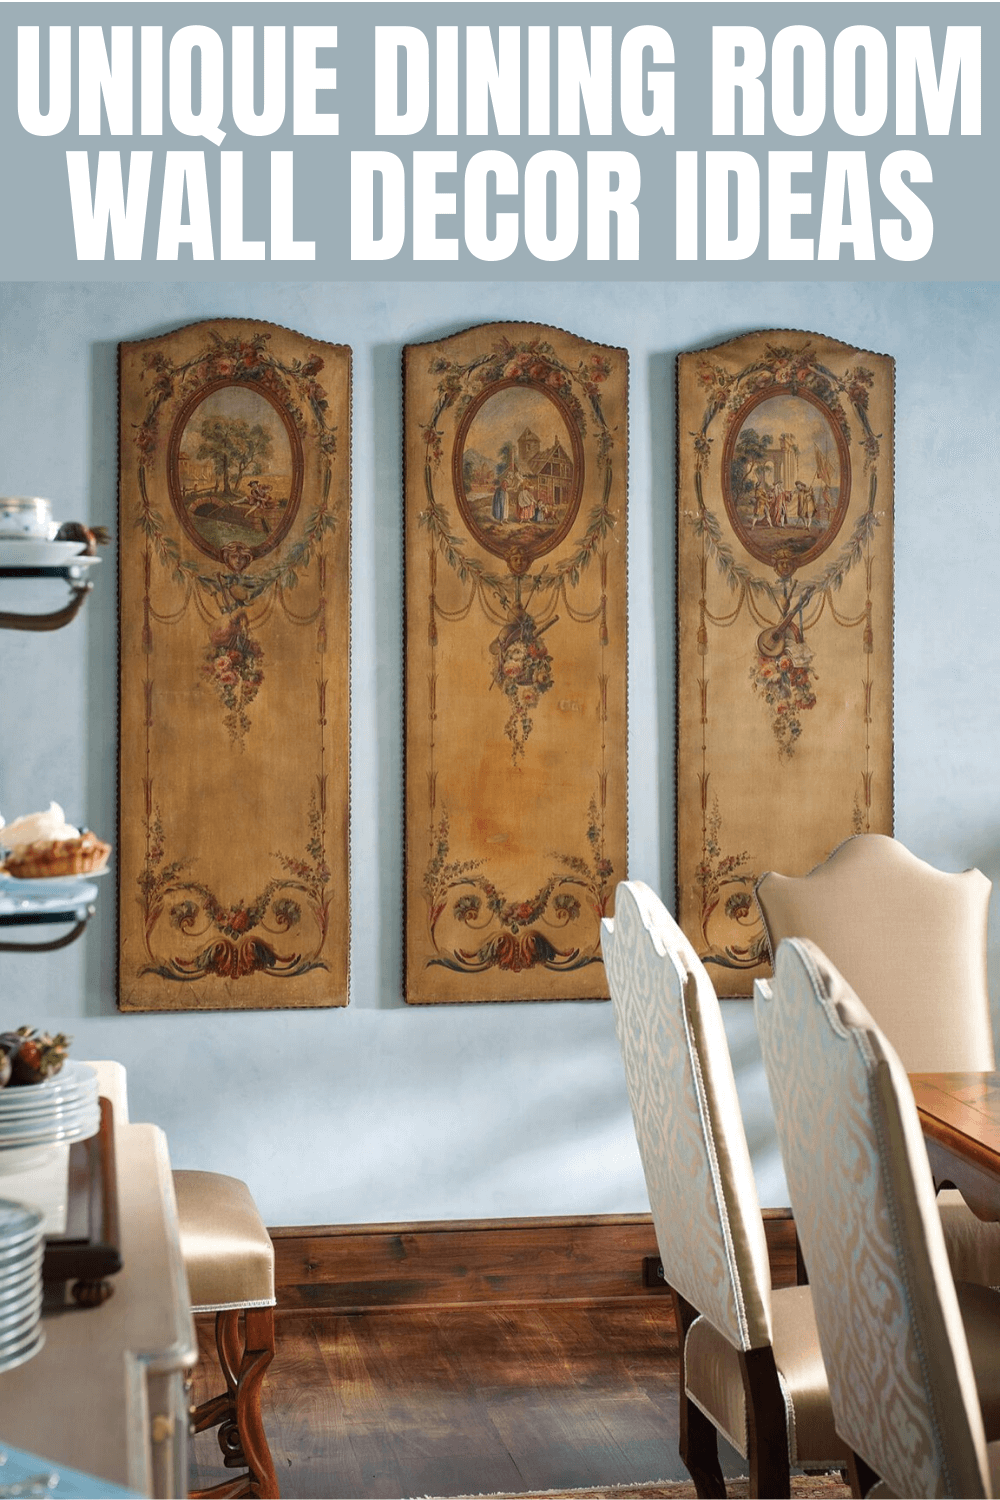 UNIQUE DINING ROOM WALL DECOR IDEAS